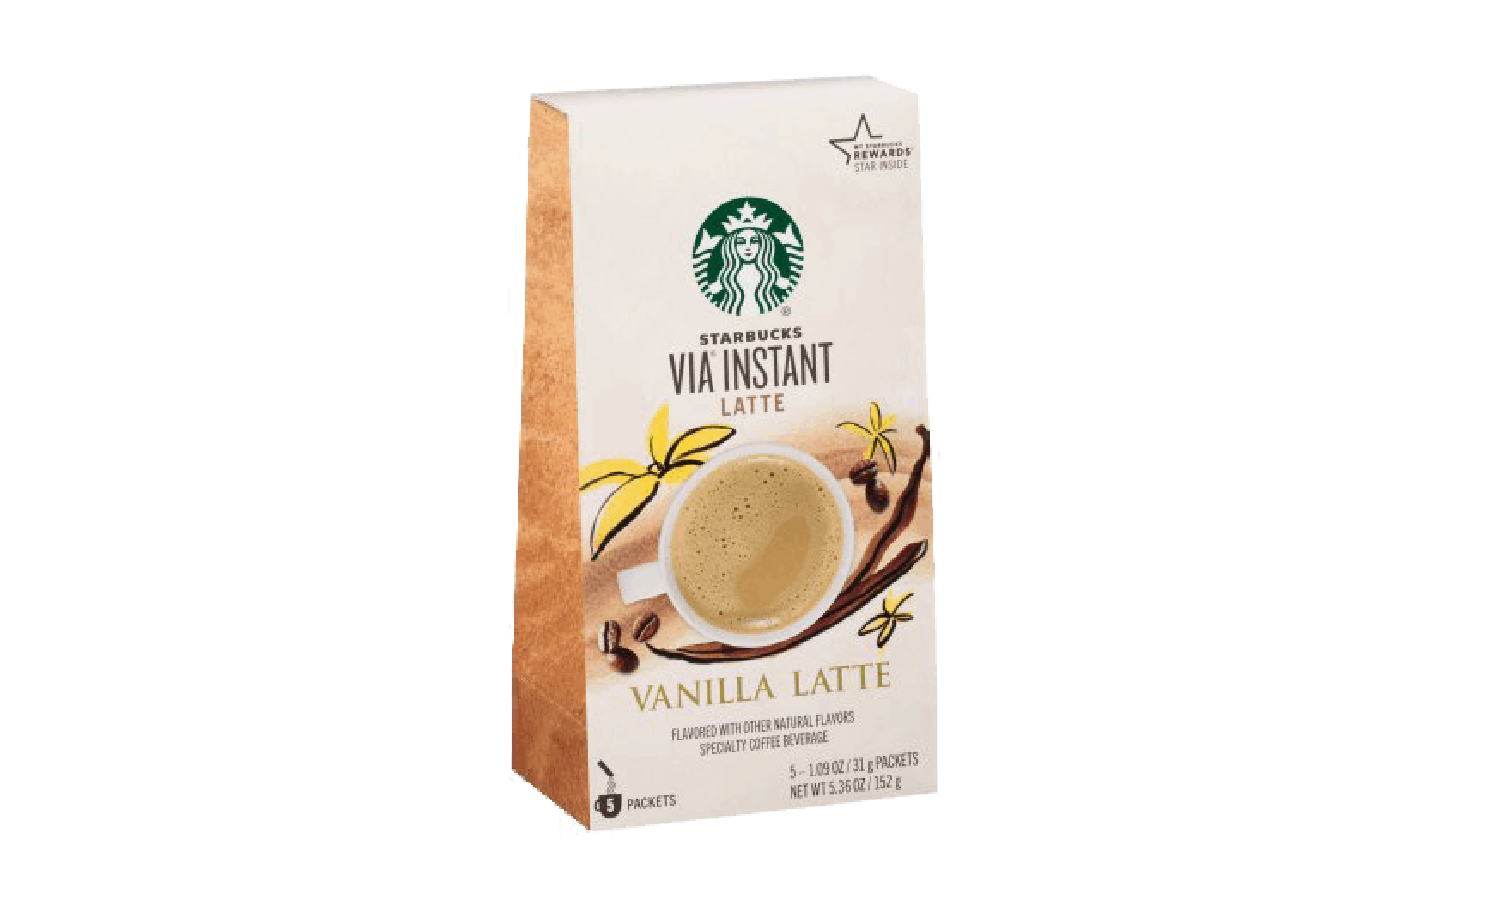 Box of Vanilla Latte Starbucks Instant